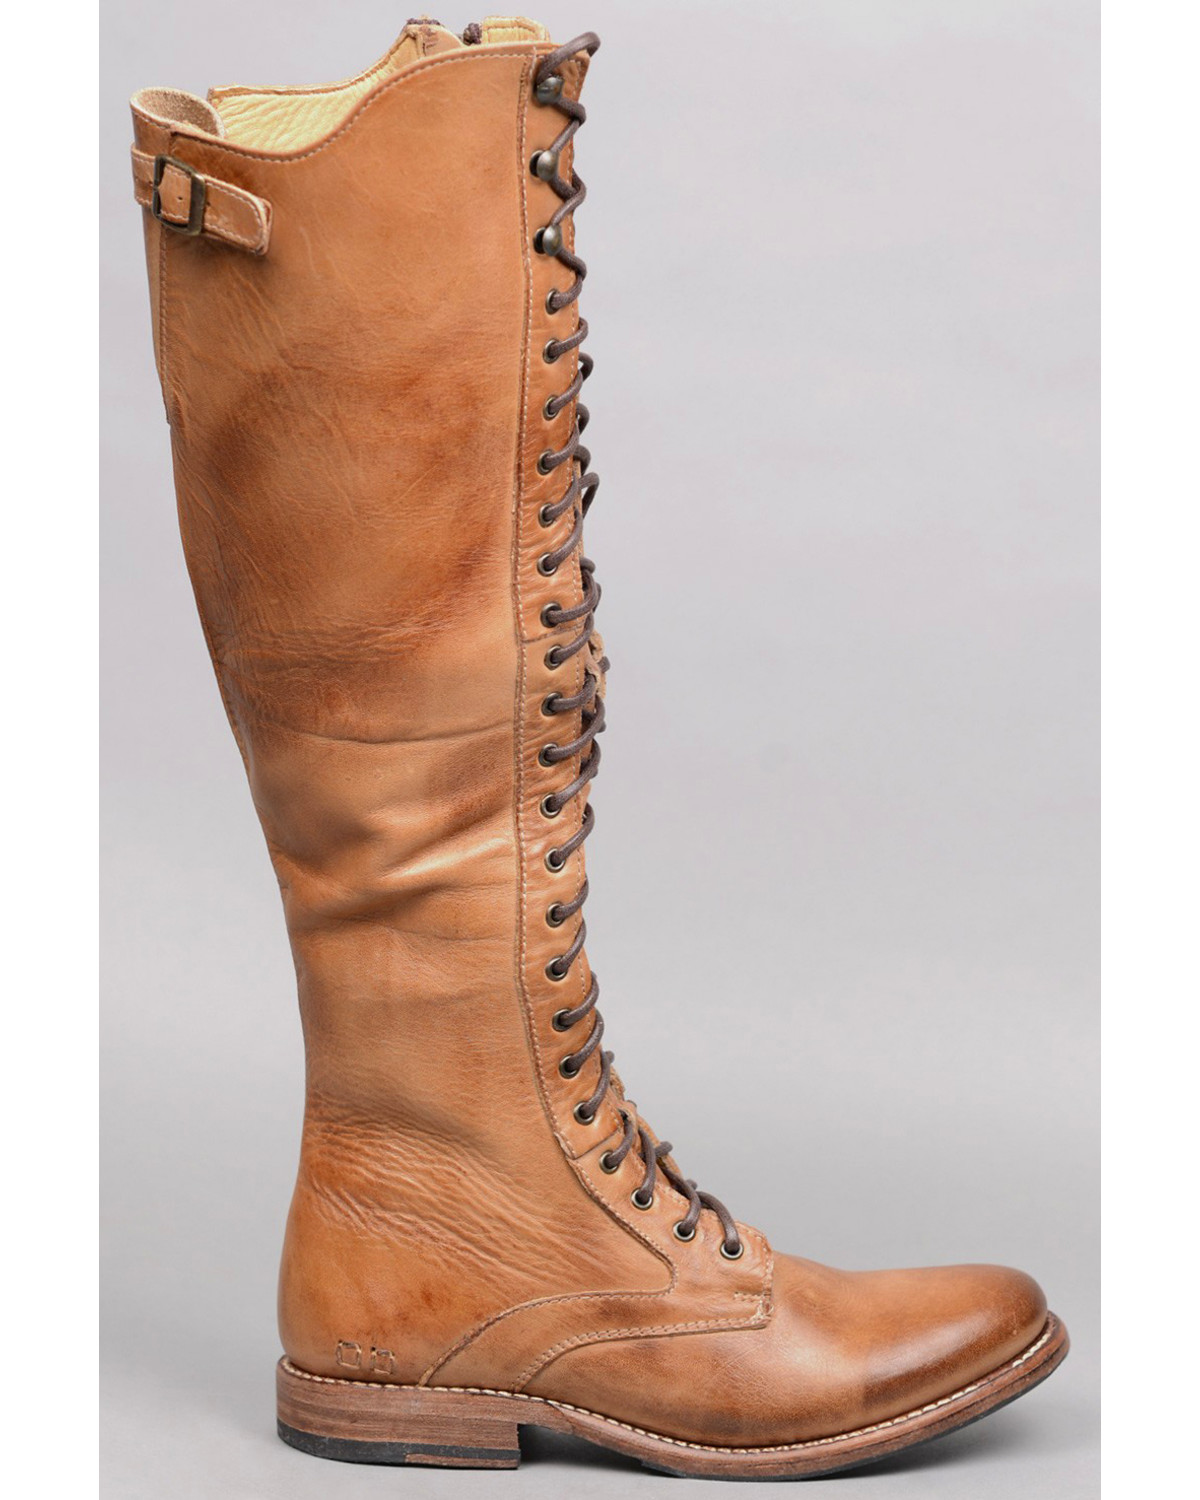 Bed Stu Women S Della Tall Lace Up Boots Round Toe